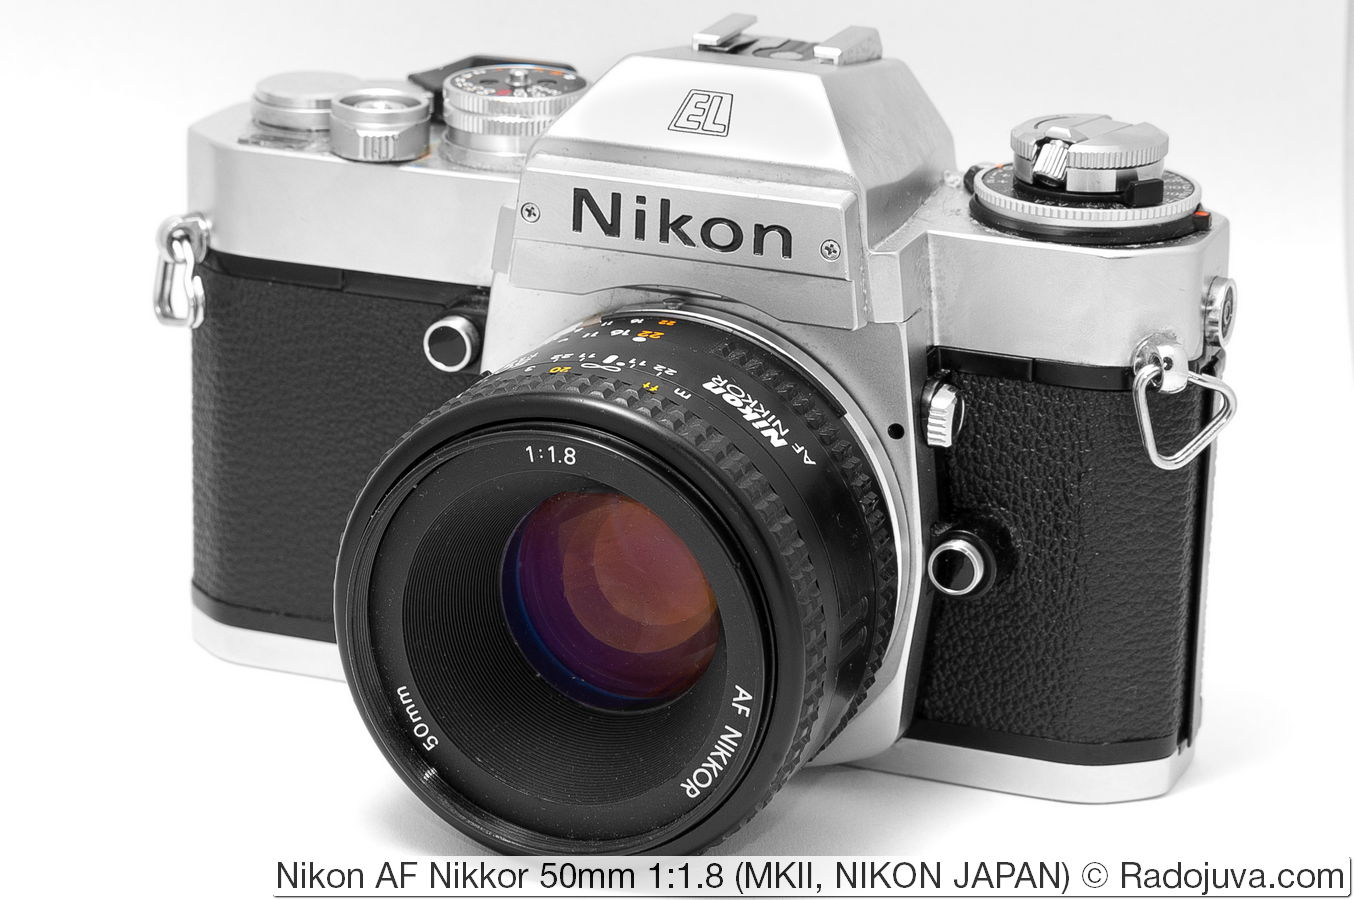 Nikon AF Nikkor 50mm 1: 1.8, MKII version, NJ (NIKON JAPAN)